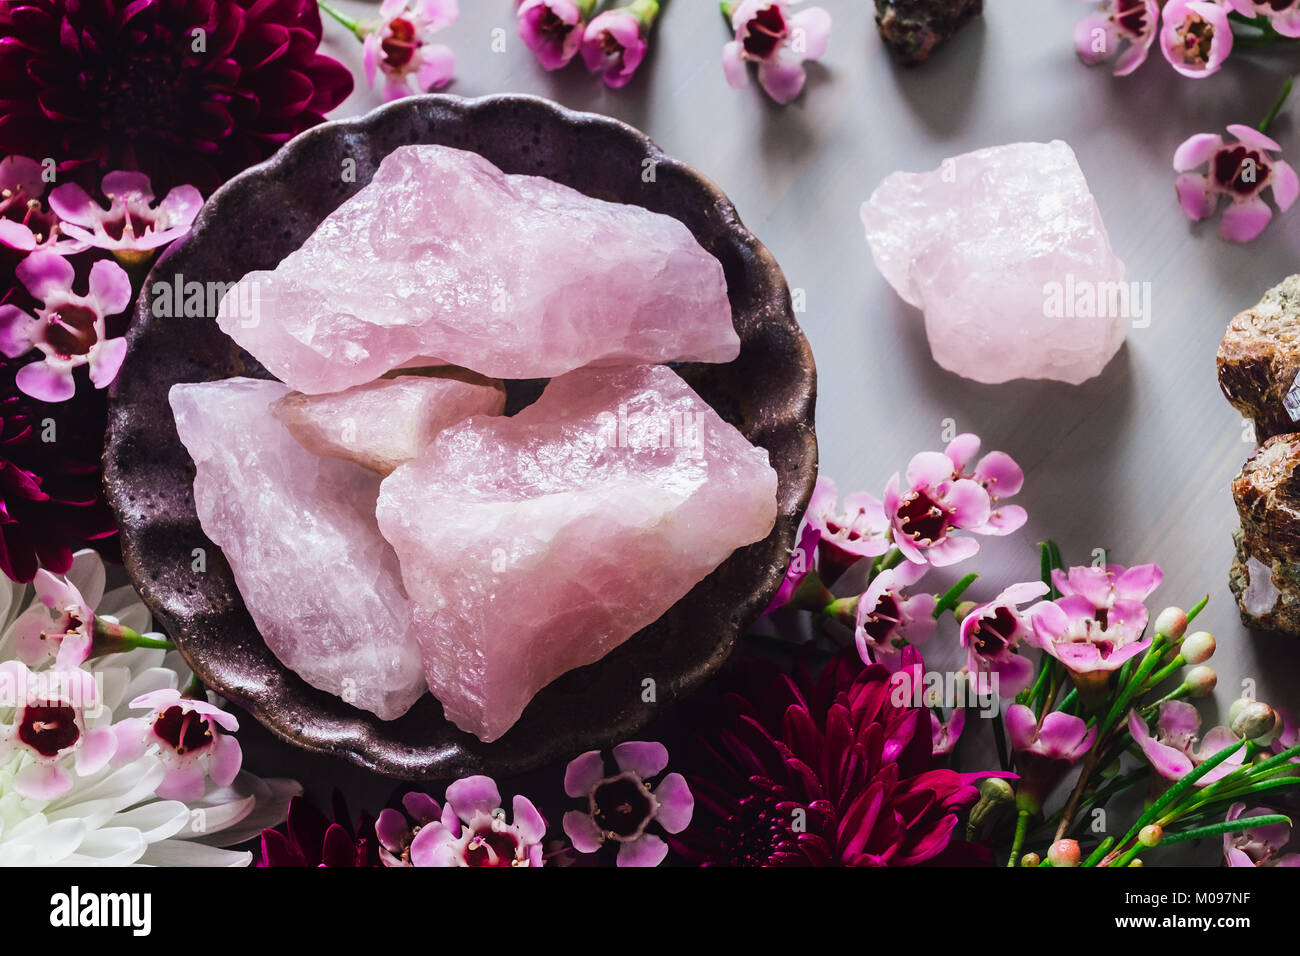 Rough Rose Quartz and Garnet in Matrix with Mixed Flowers - Stock Image